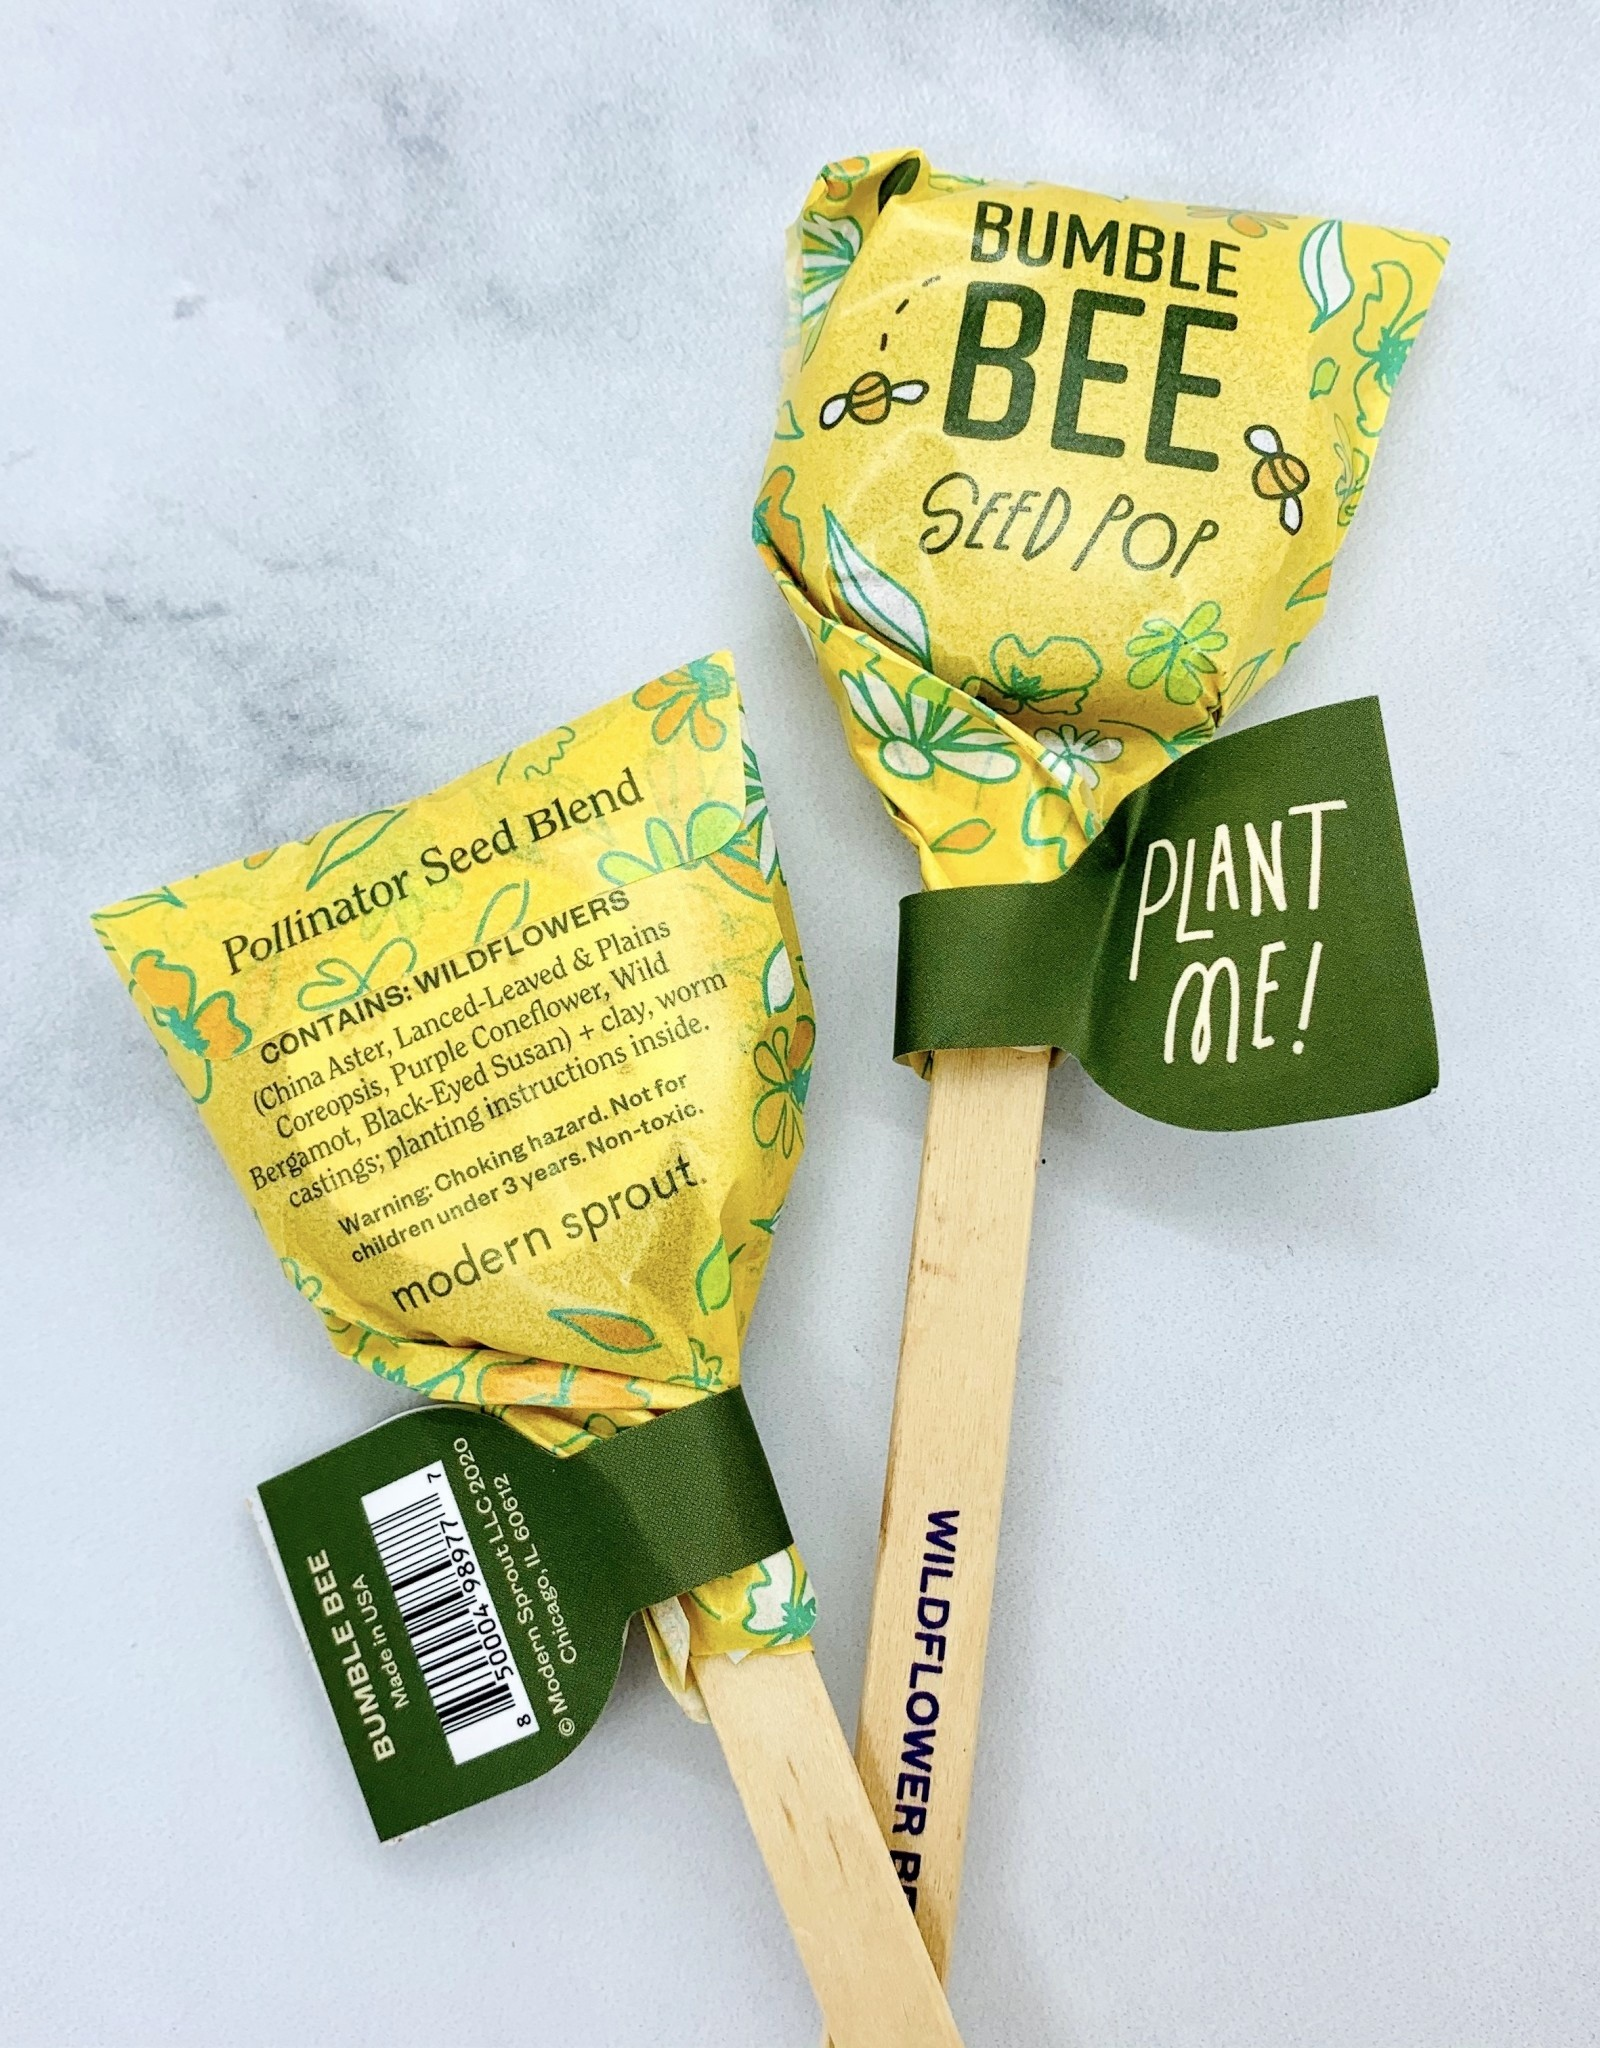 Modern Sprout Pollinator Seed Pops